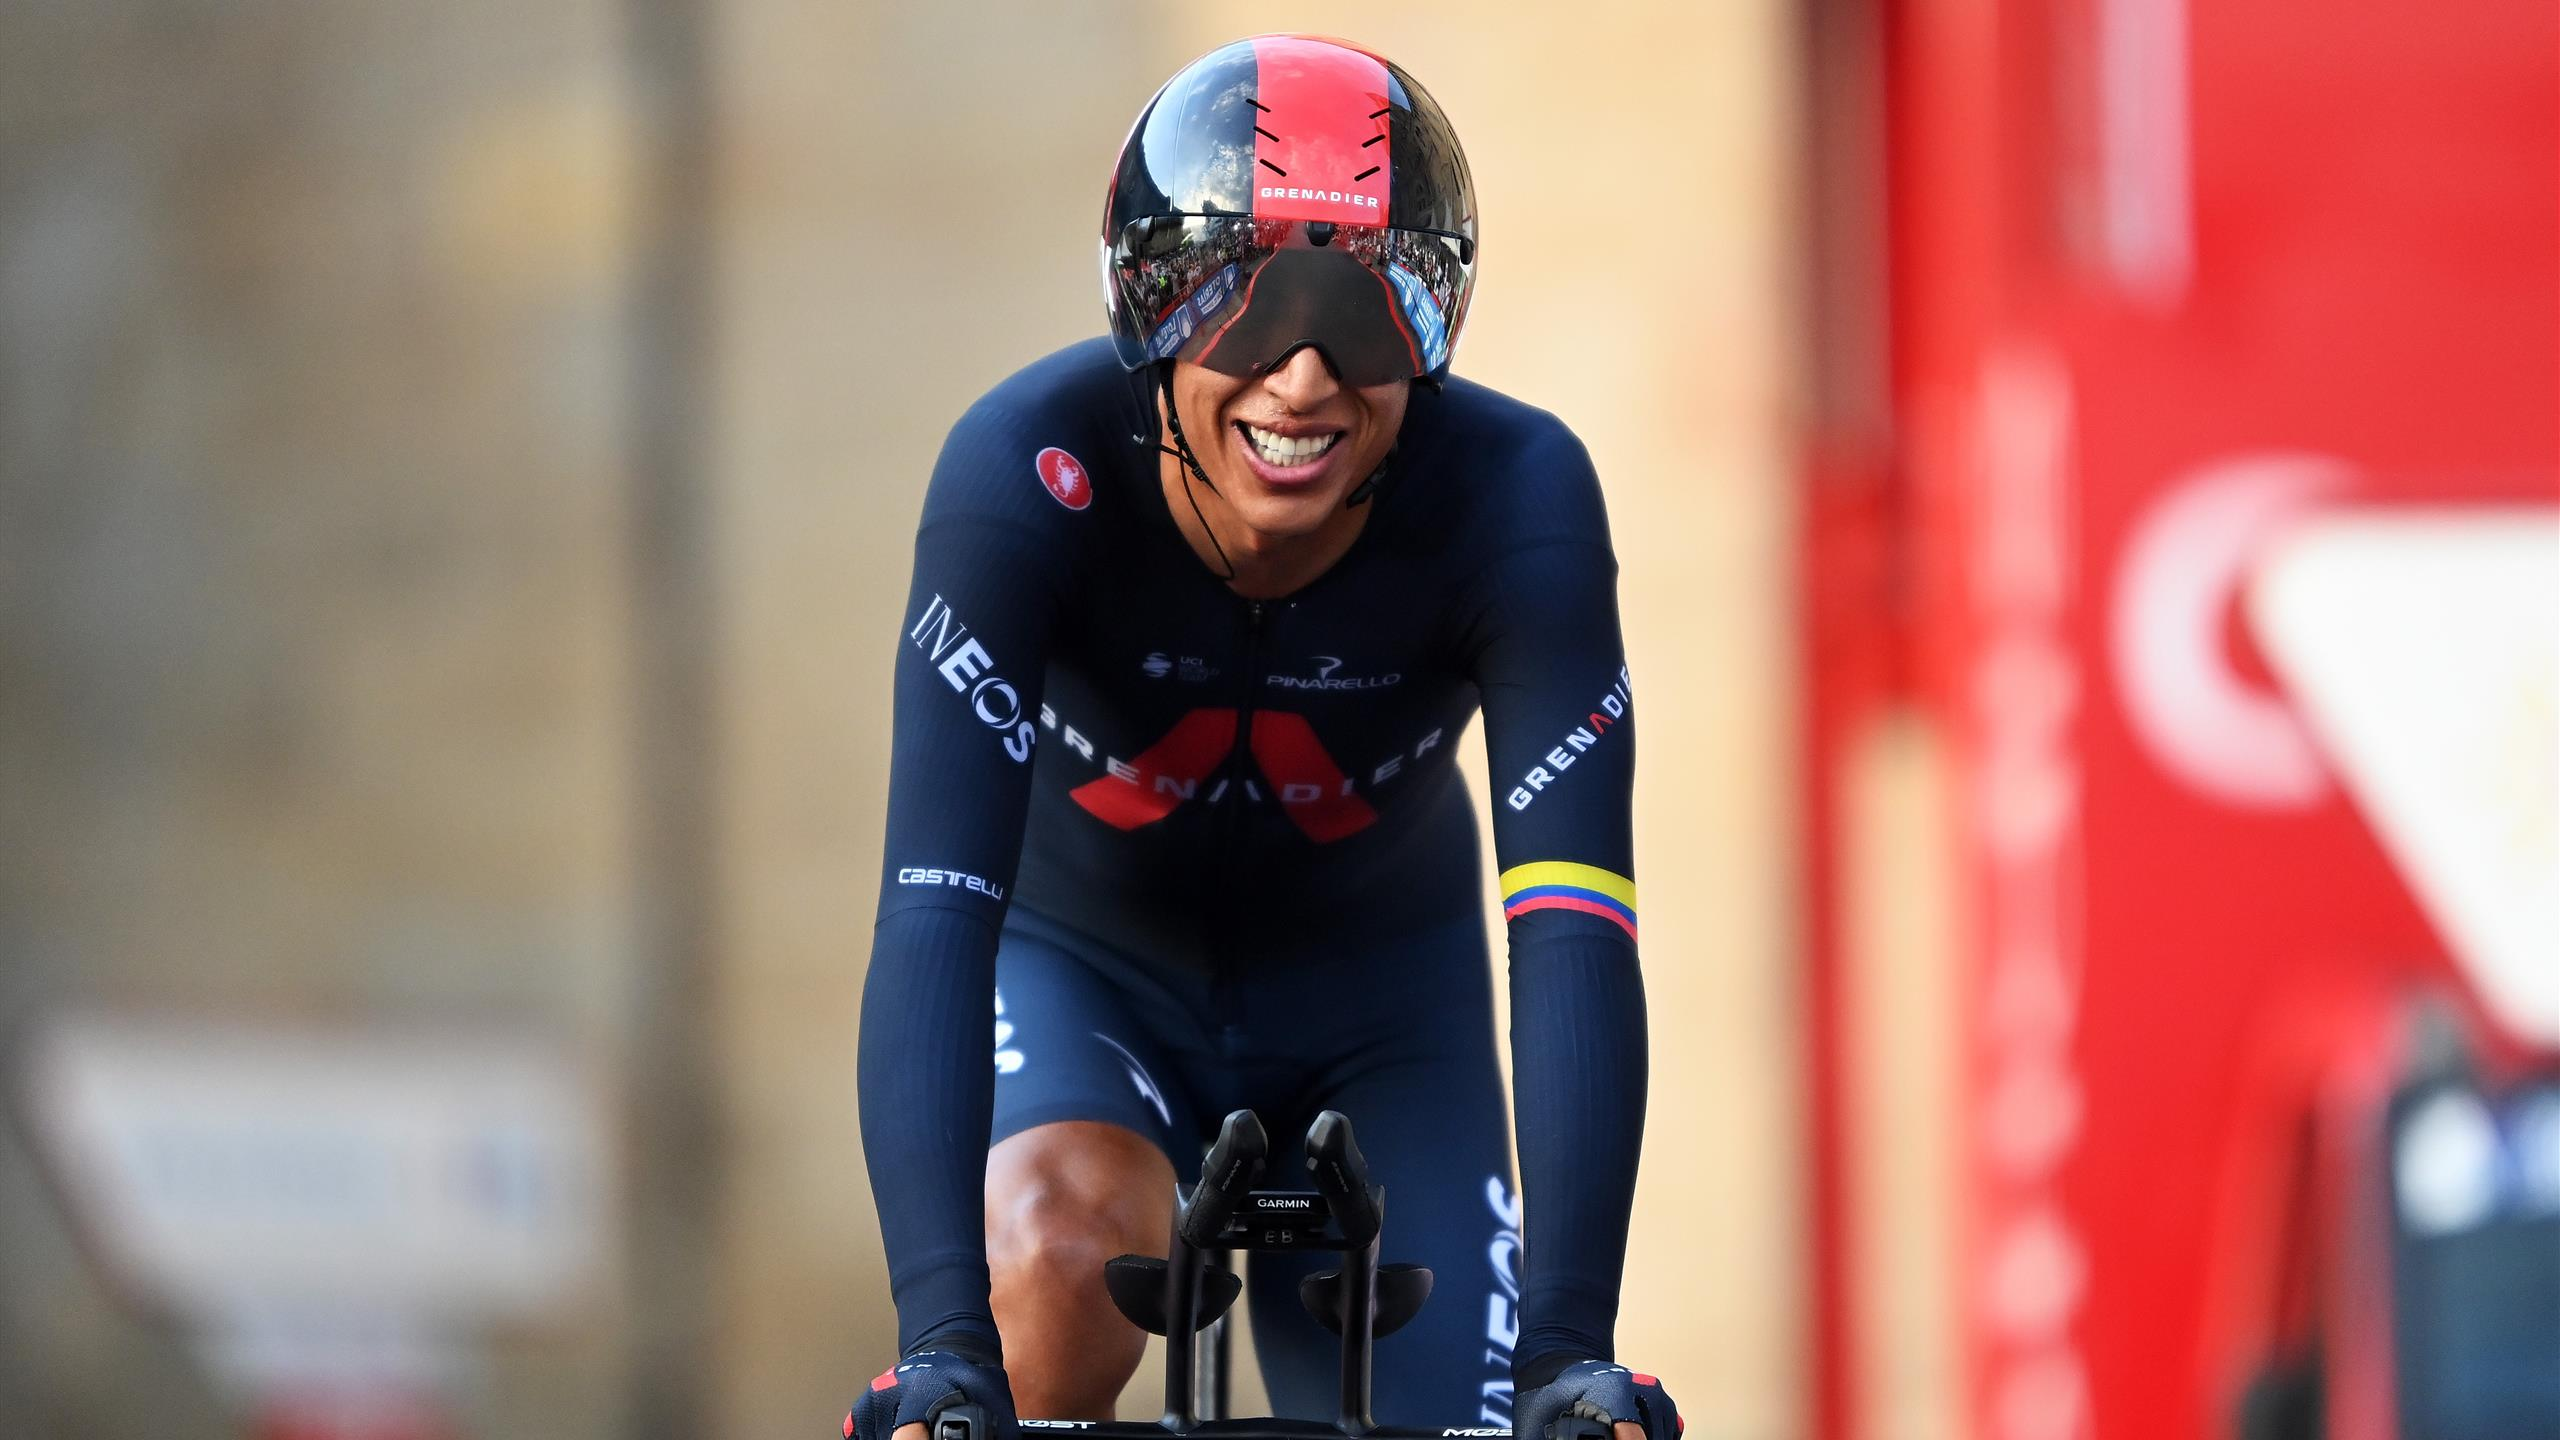 Biking information – Egan Bernal's agent says the rider is completely satisfied at Ineos Grenadiers after exit rumours floor